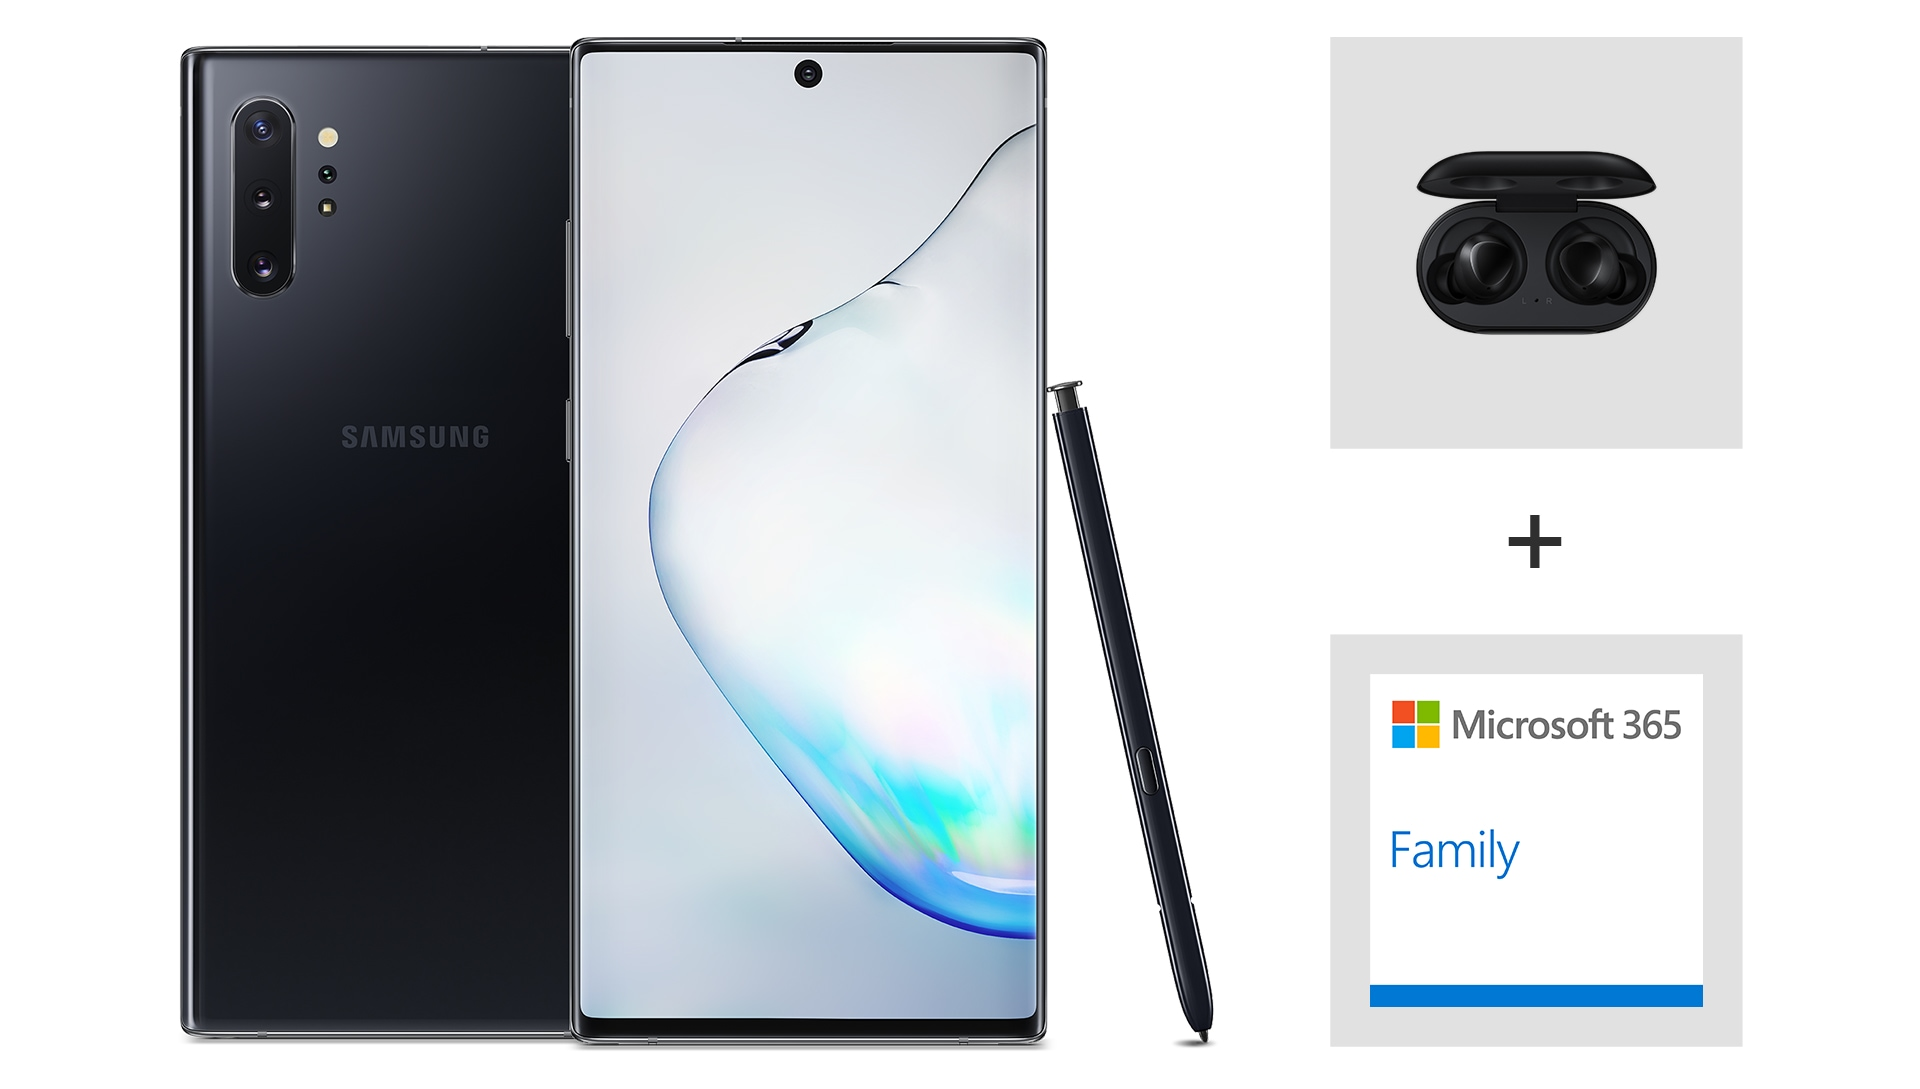 Samsung Note 10 bundle with Samsung Earbuds and Microsoft 365 Family.